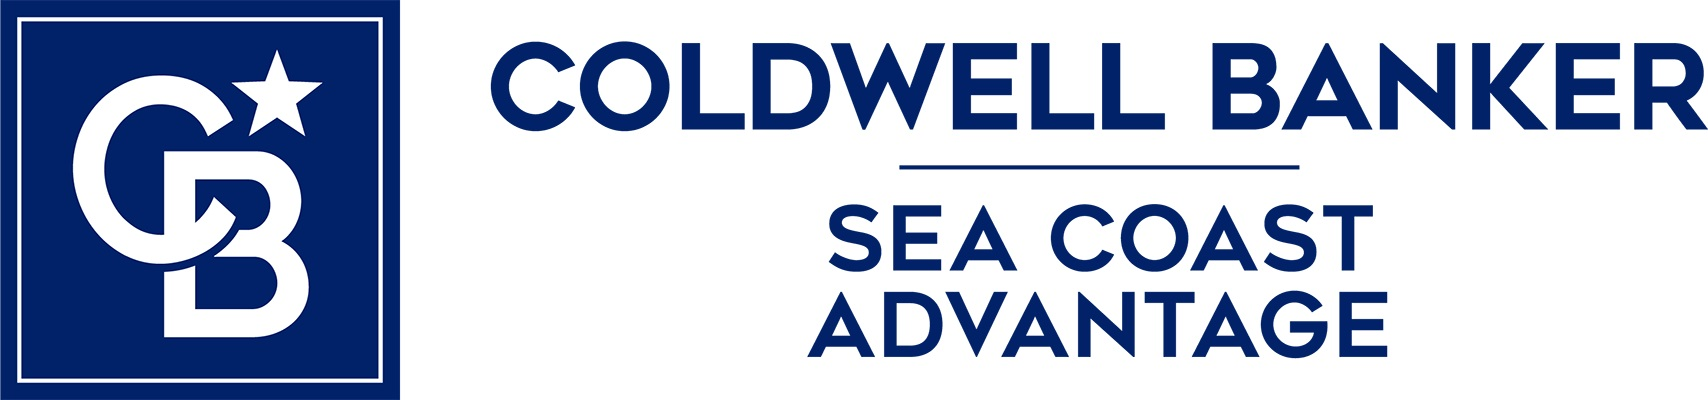 Ajay Singh - Coldwell Banker Sea Coast Advantage Realty Logo